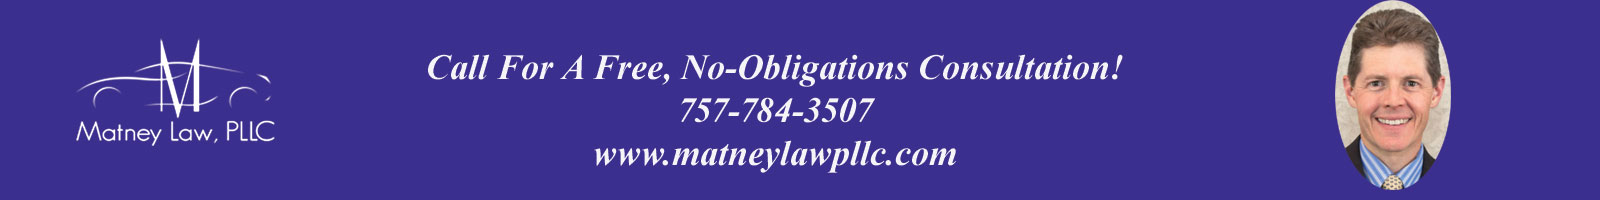 Matney Law PLLC - Newport News Virginia - Traffic Court & DUI Attorney